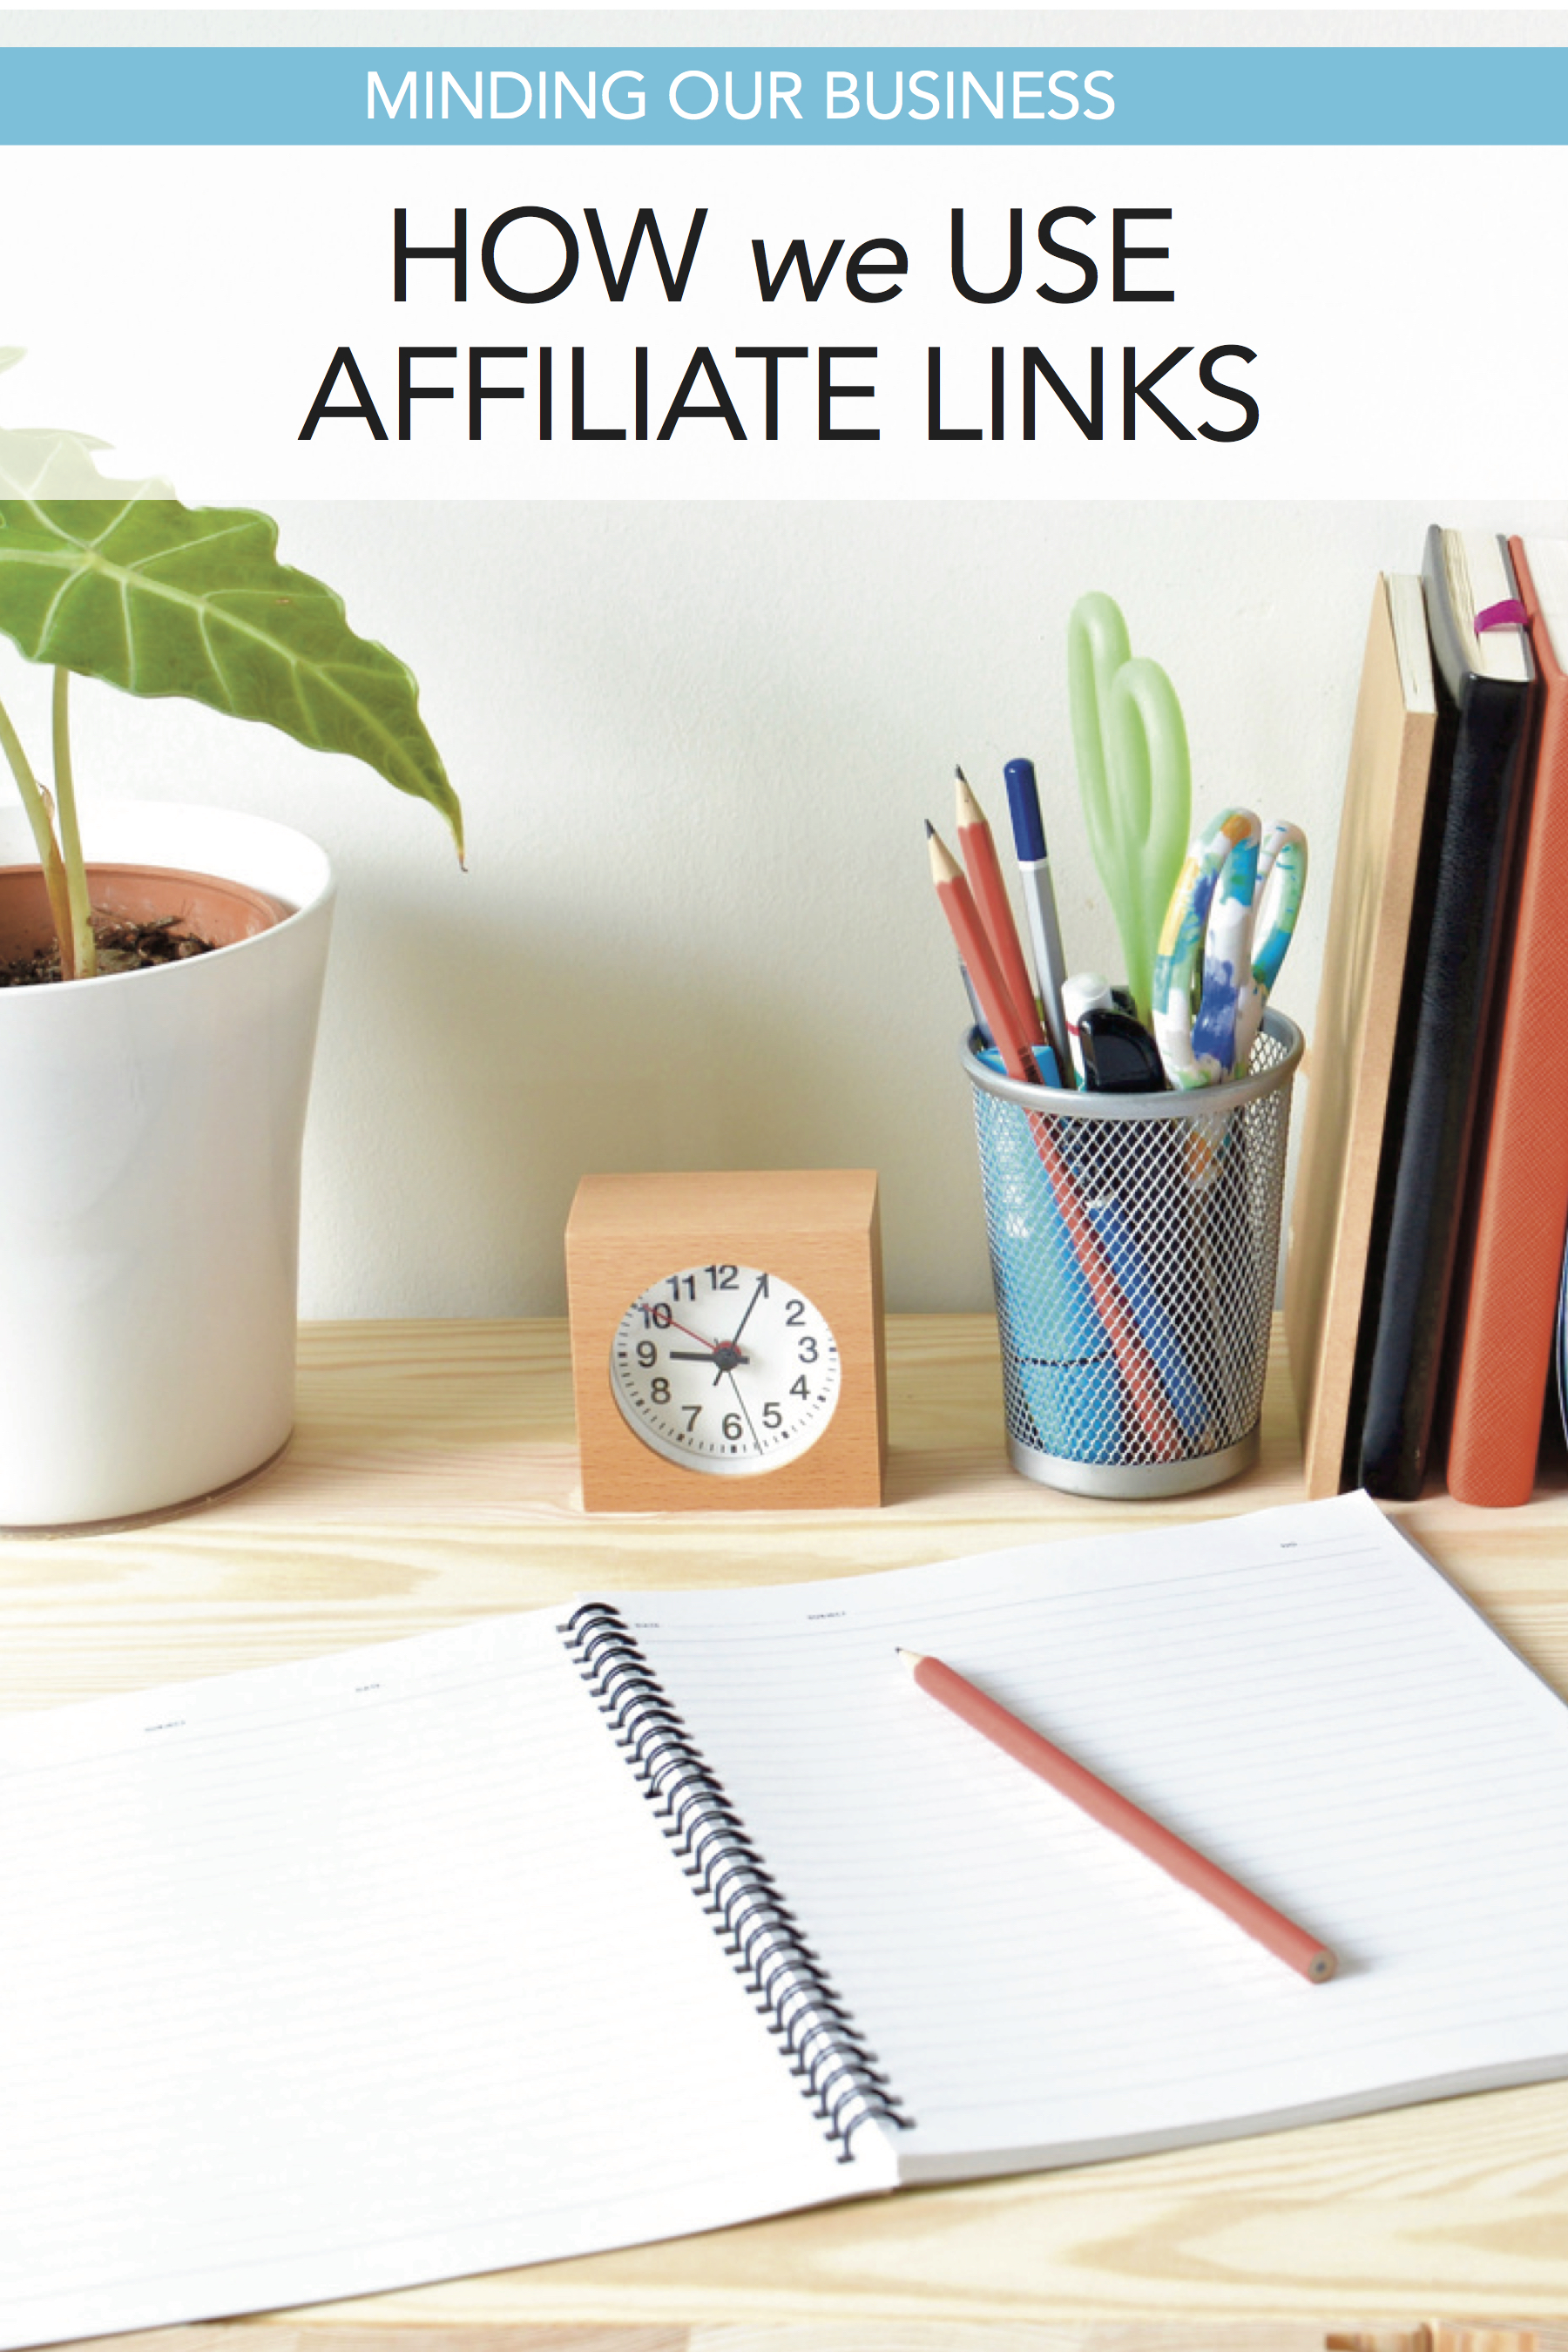 HSL's affiliate link policy